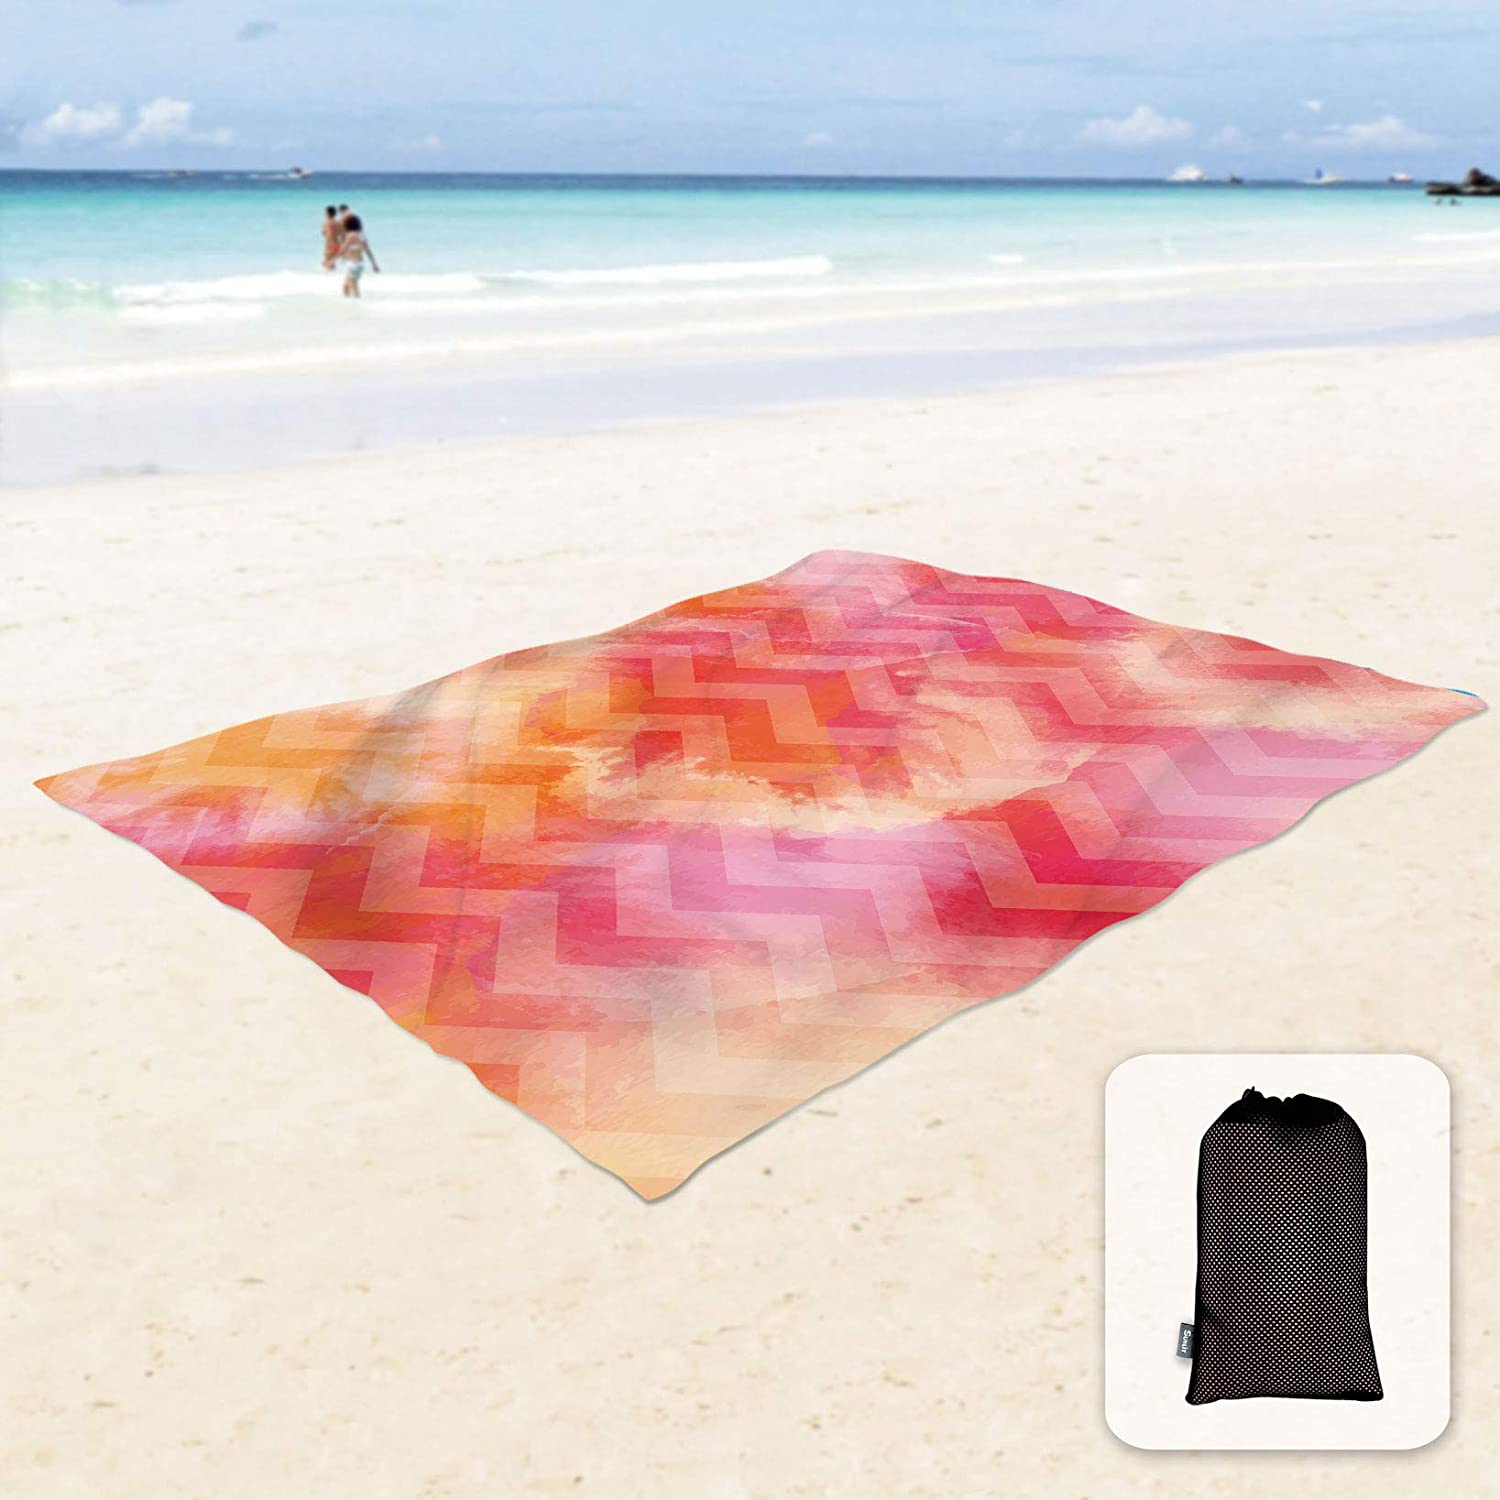 Travel Camping and Outdoor Music Festival Sunlit Silky Soft Sand Proof Beach Blanket Sand Proof Mat with Corner Pockets and Mesh Bag 6 x 7 for Beach Party Pink Zigzag